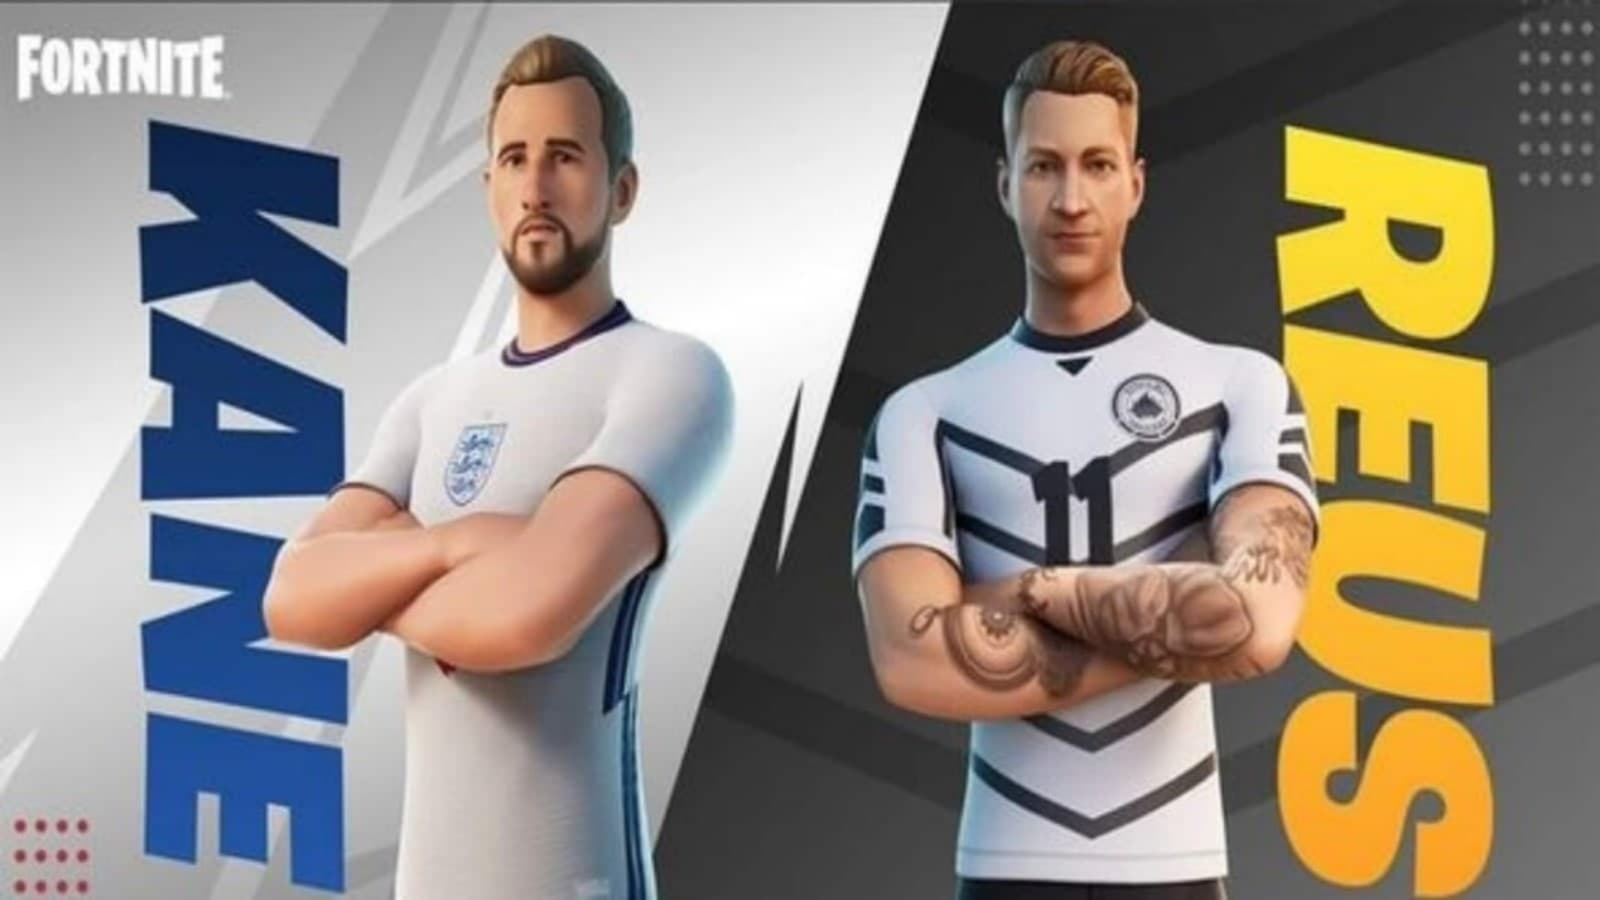 Fortnite UEFA Euro 2020 Cup: Schedule, Rewards, and More